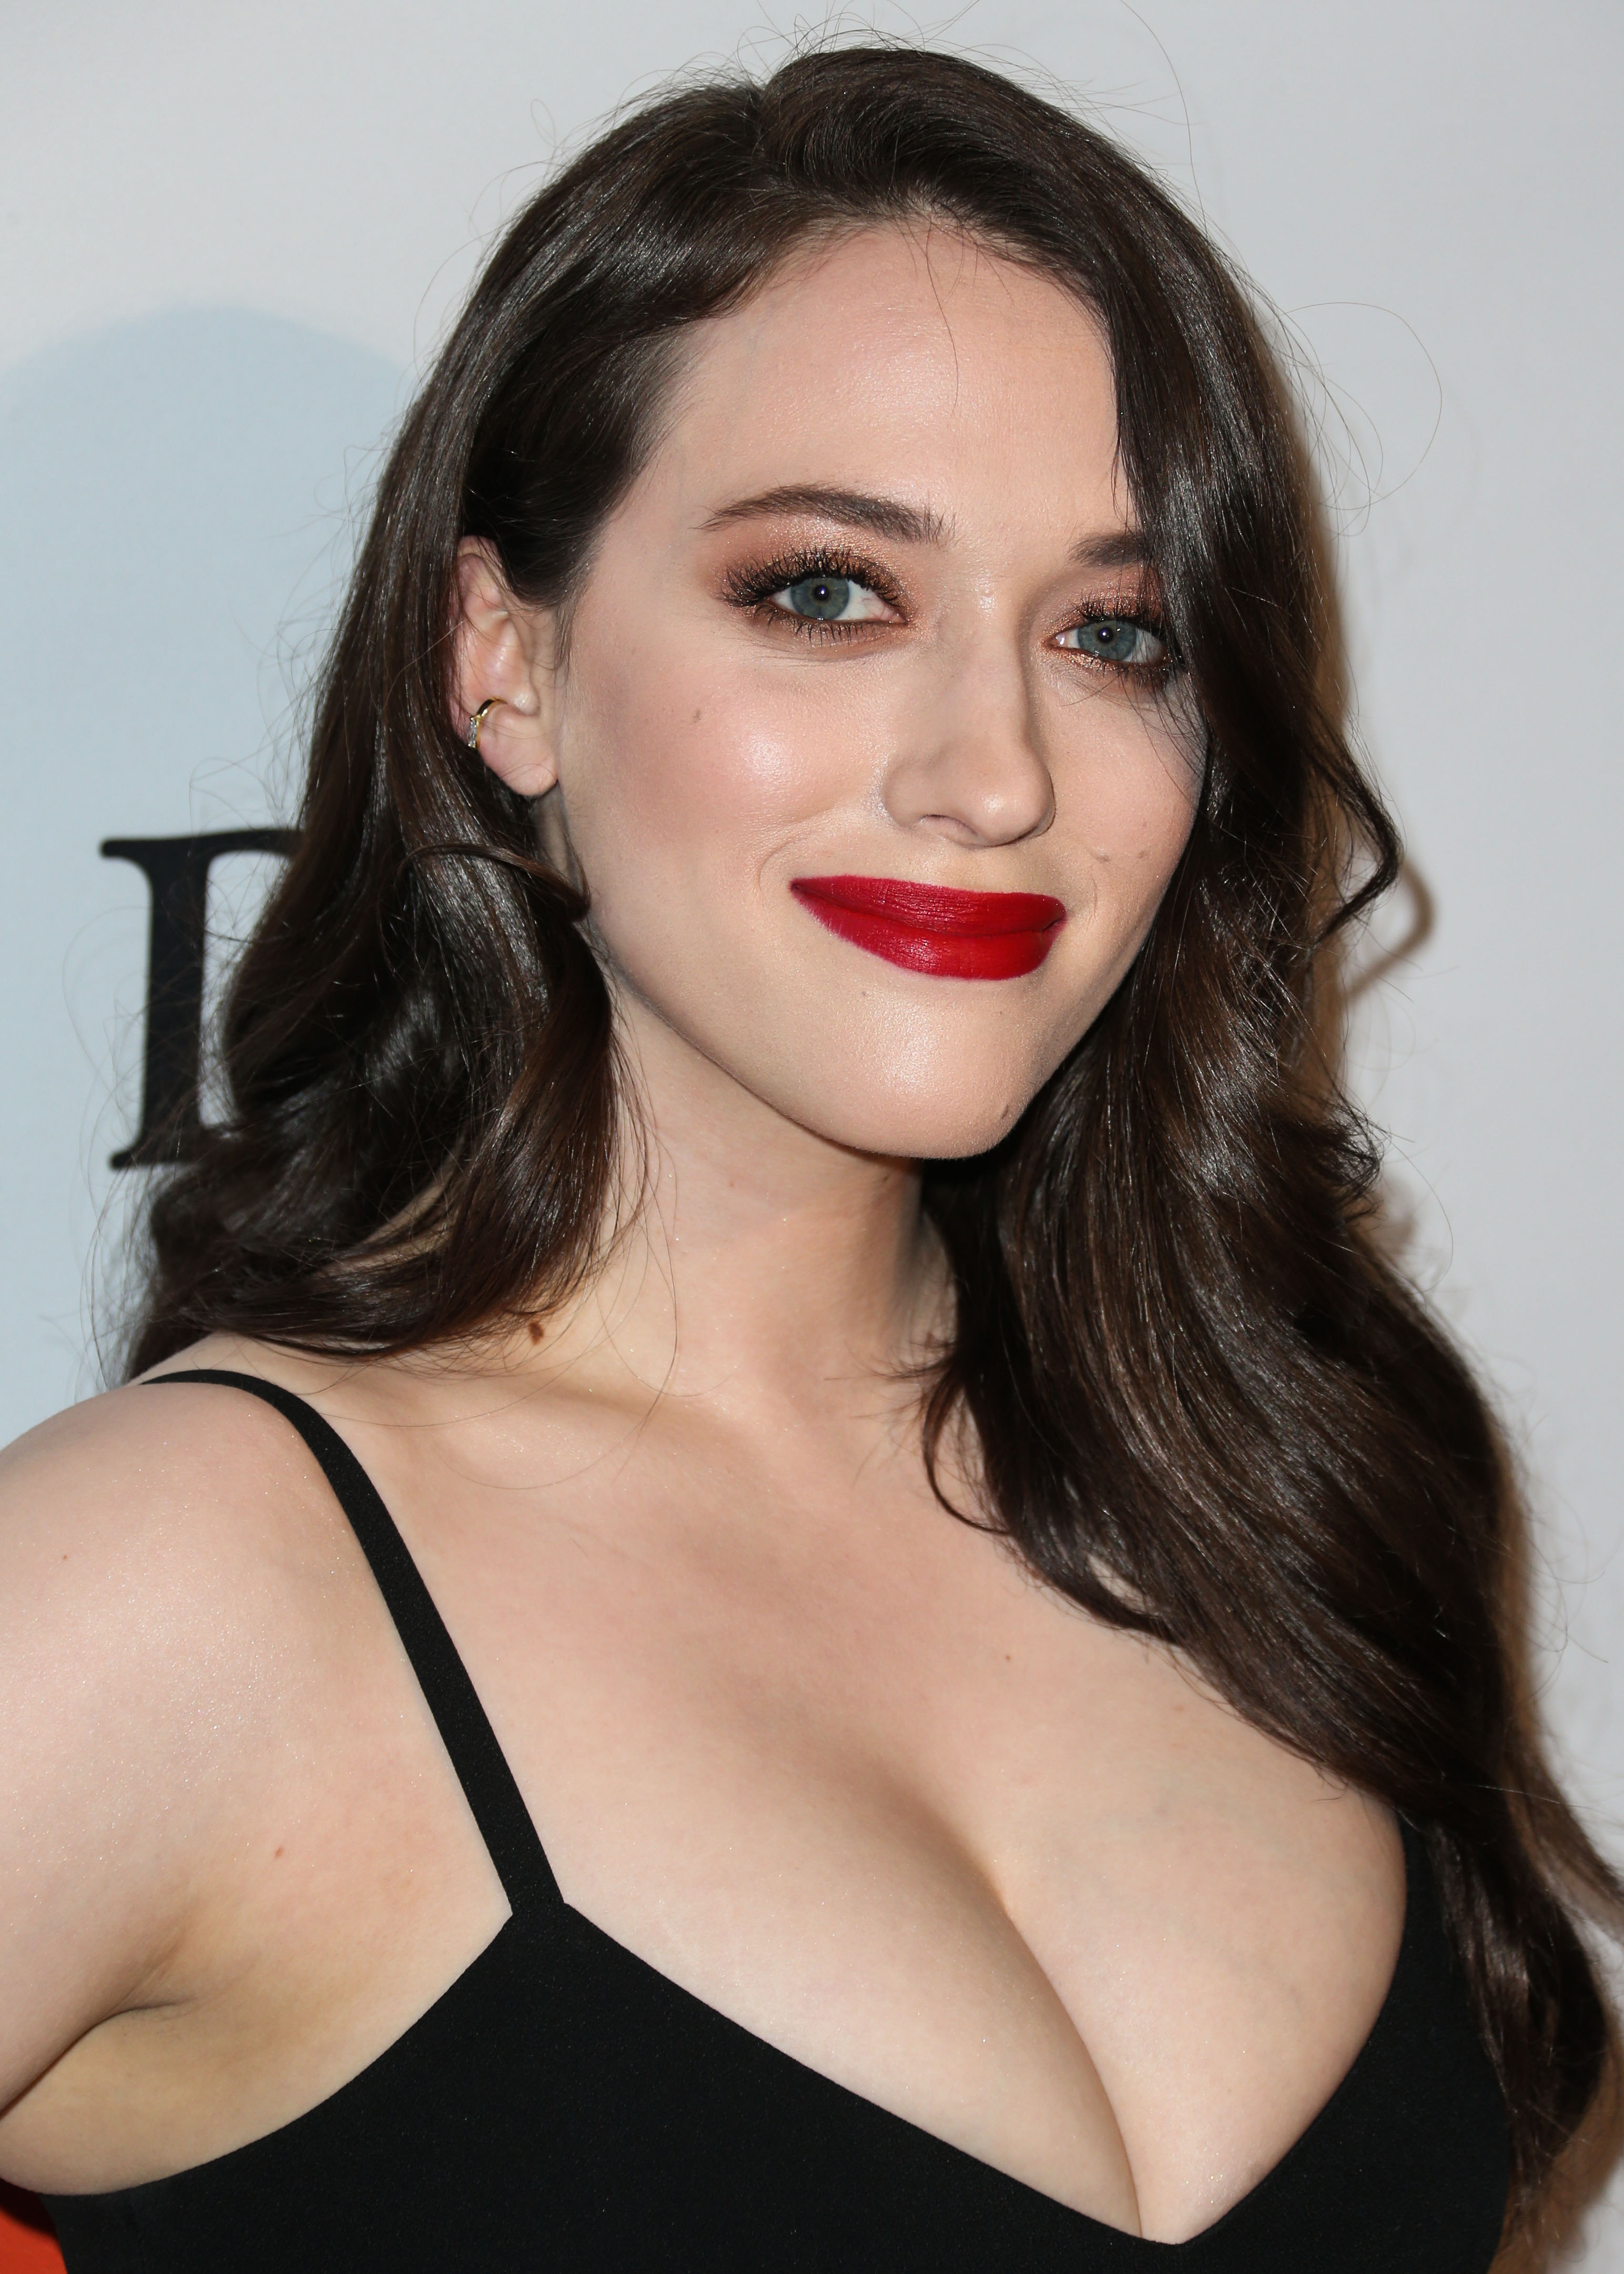 Kat dennings leaked photos